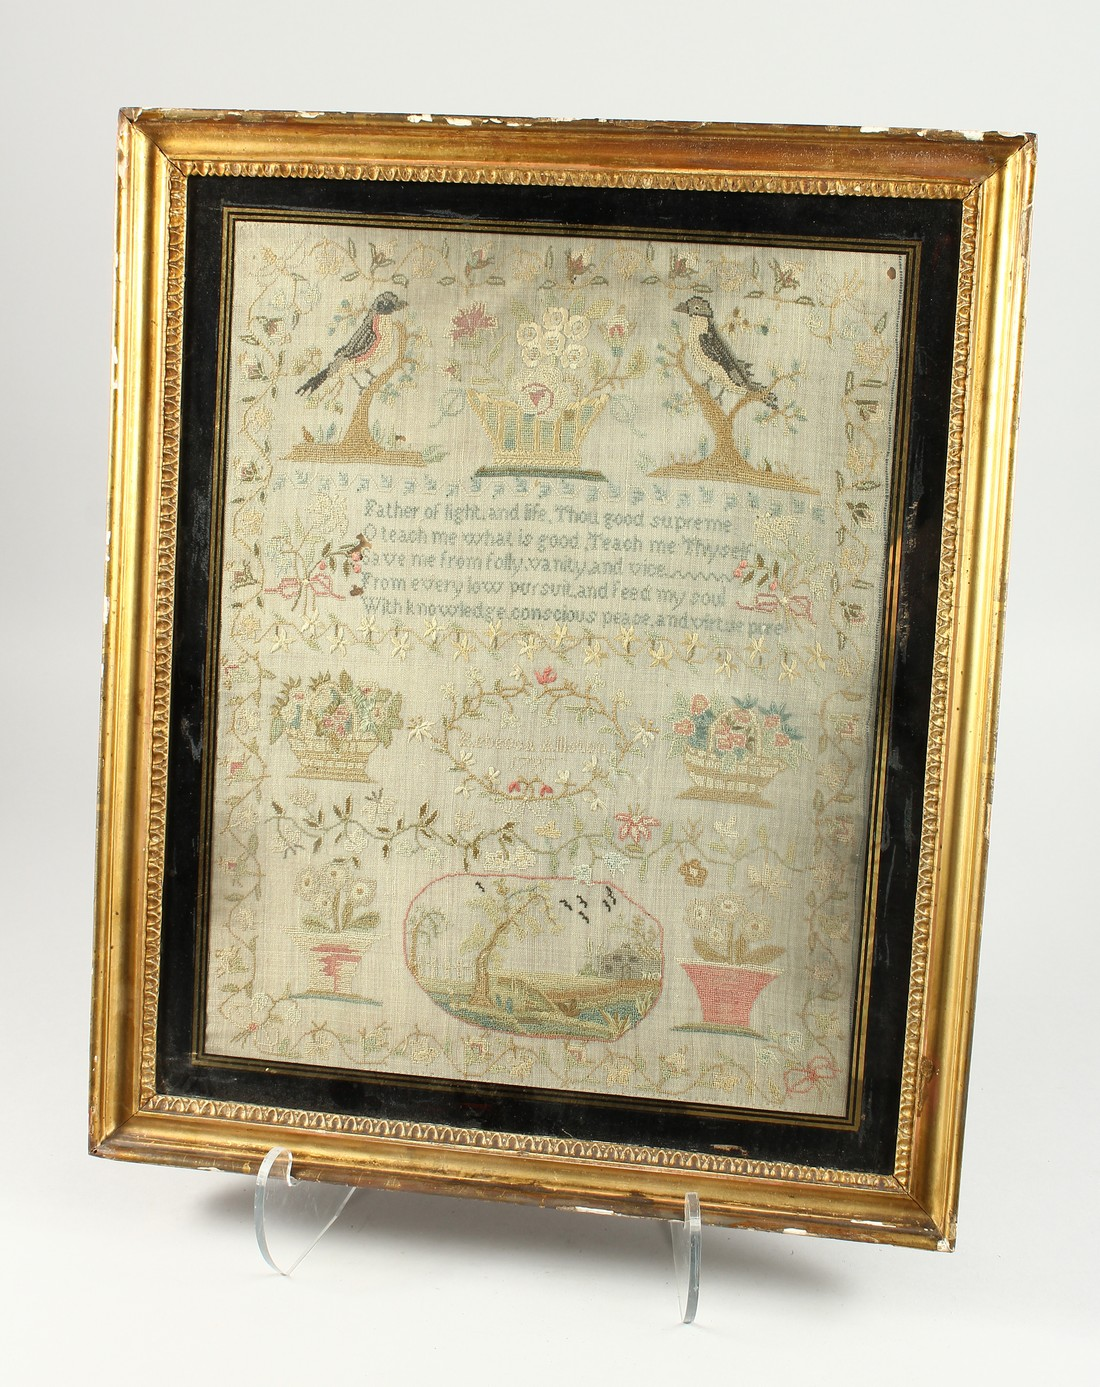 A GEORGE III FRAMED AND GLAZED SAMPLER by Roberta Allerton, 1787, with a poem, birds, flowers etc.